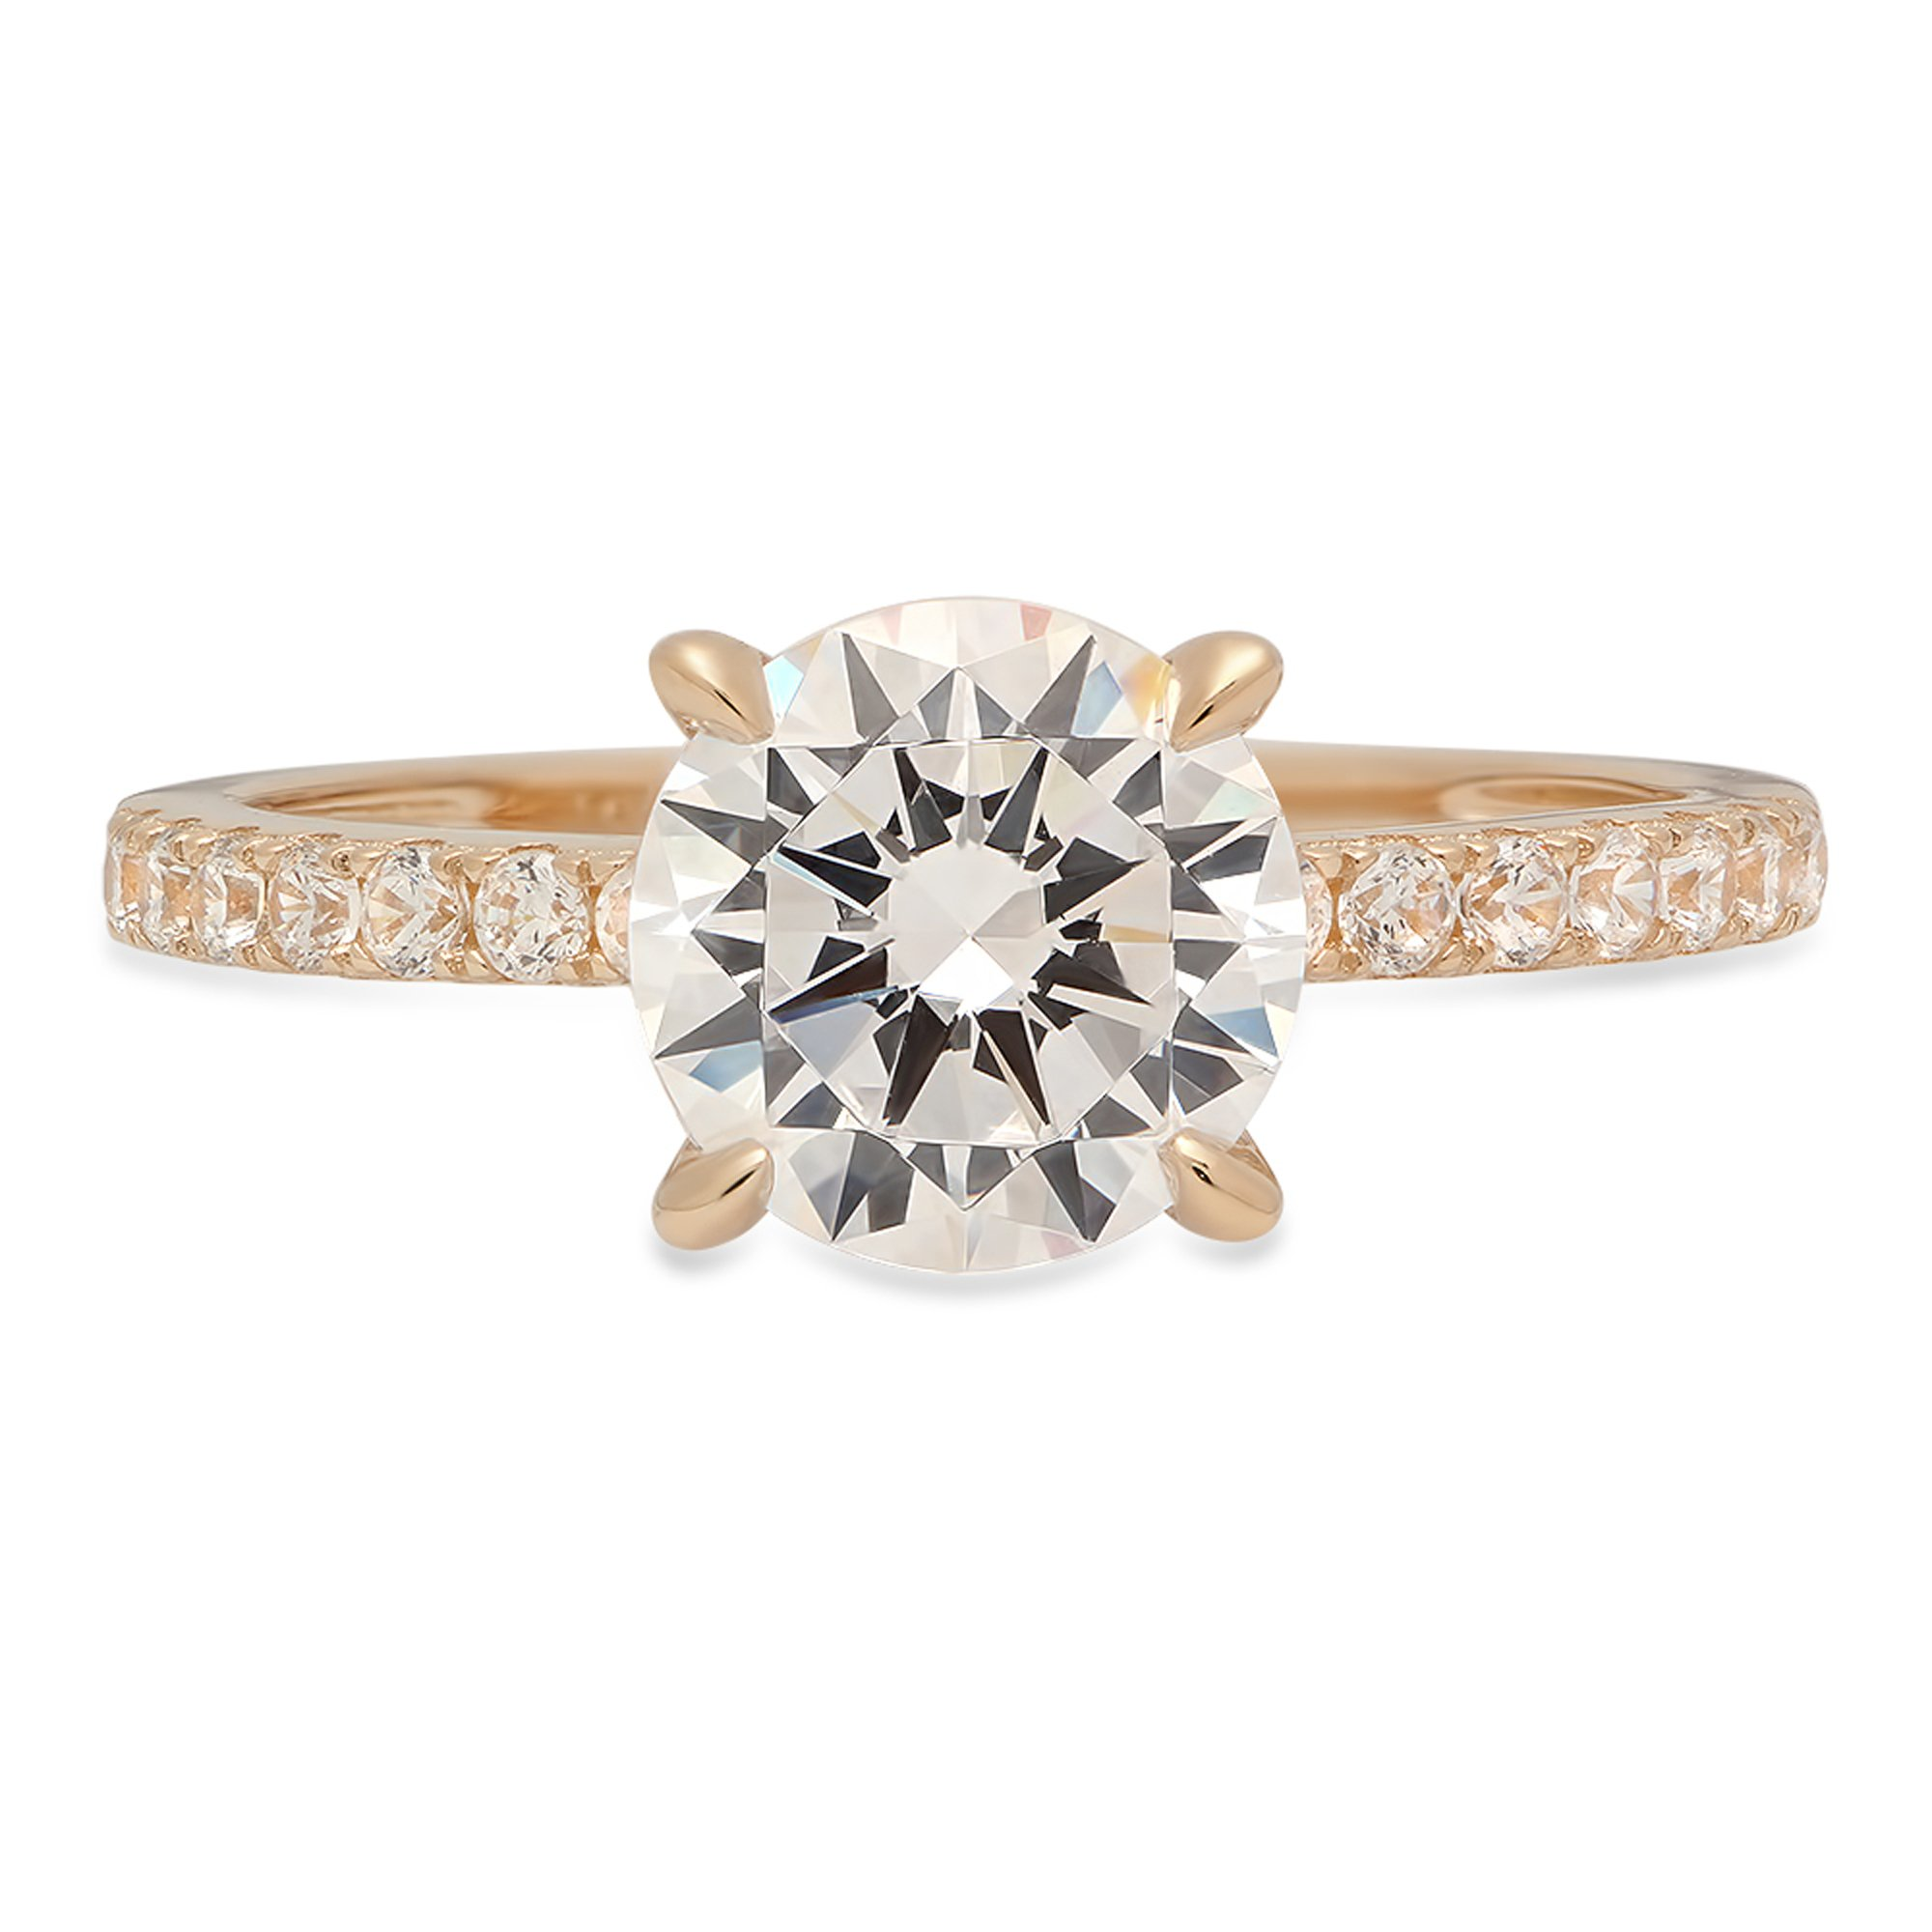 1.84 ct Brilliant Round Cut Accent Solitaire Engagement Wedding Bridal Promise Ring Solid 14k Yellow Gold, Size 5.25 Clara Pucci